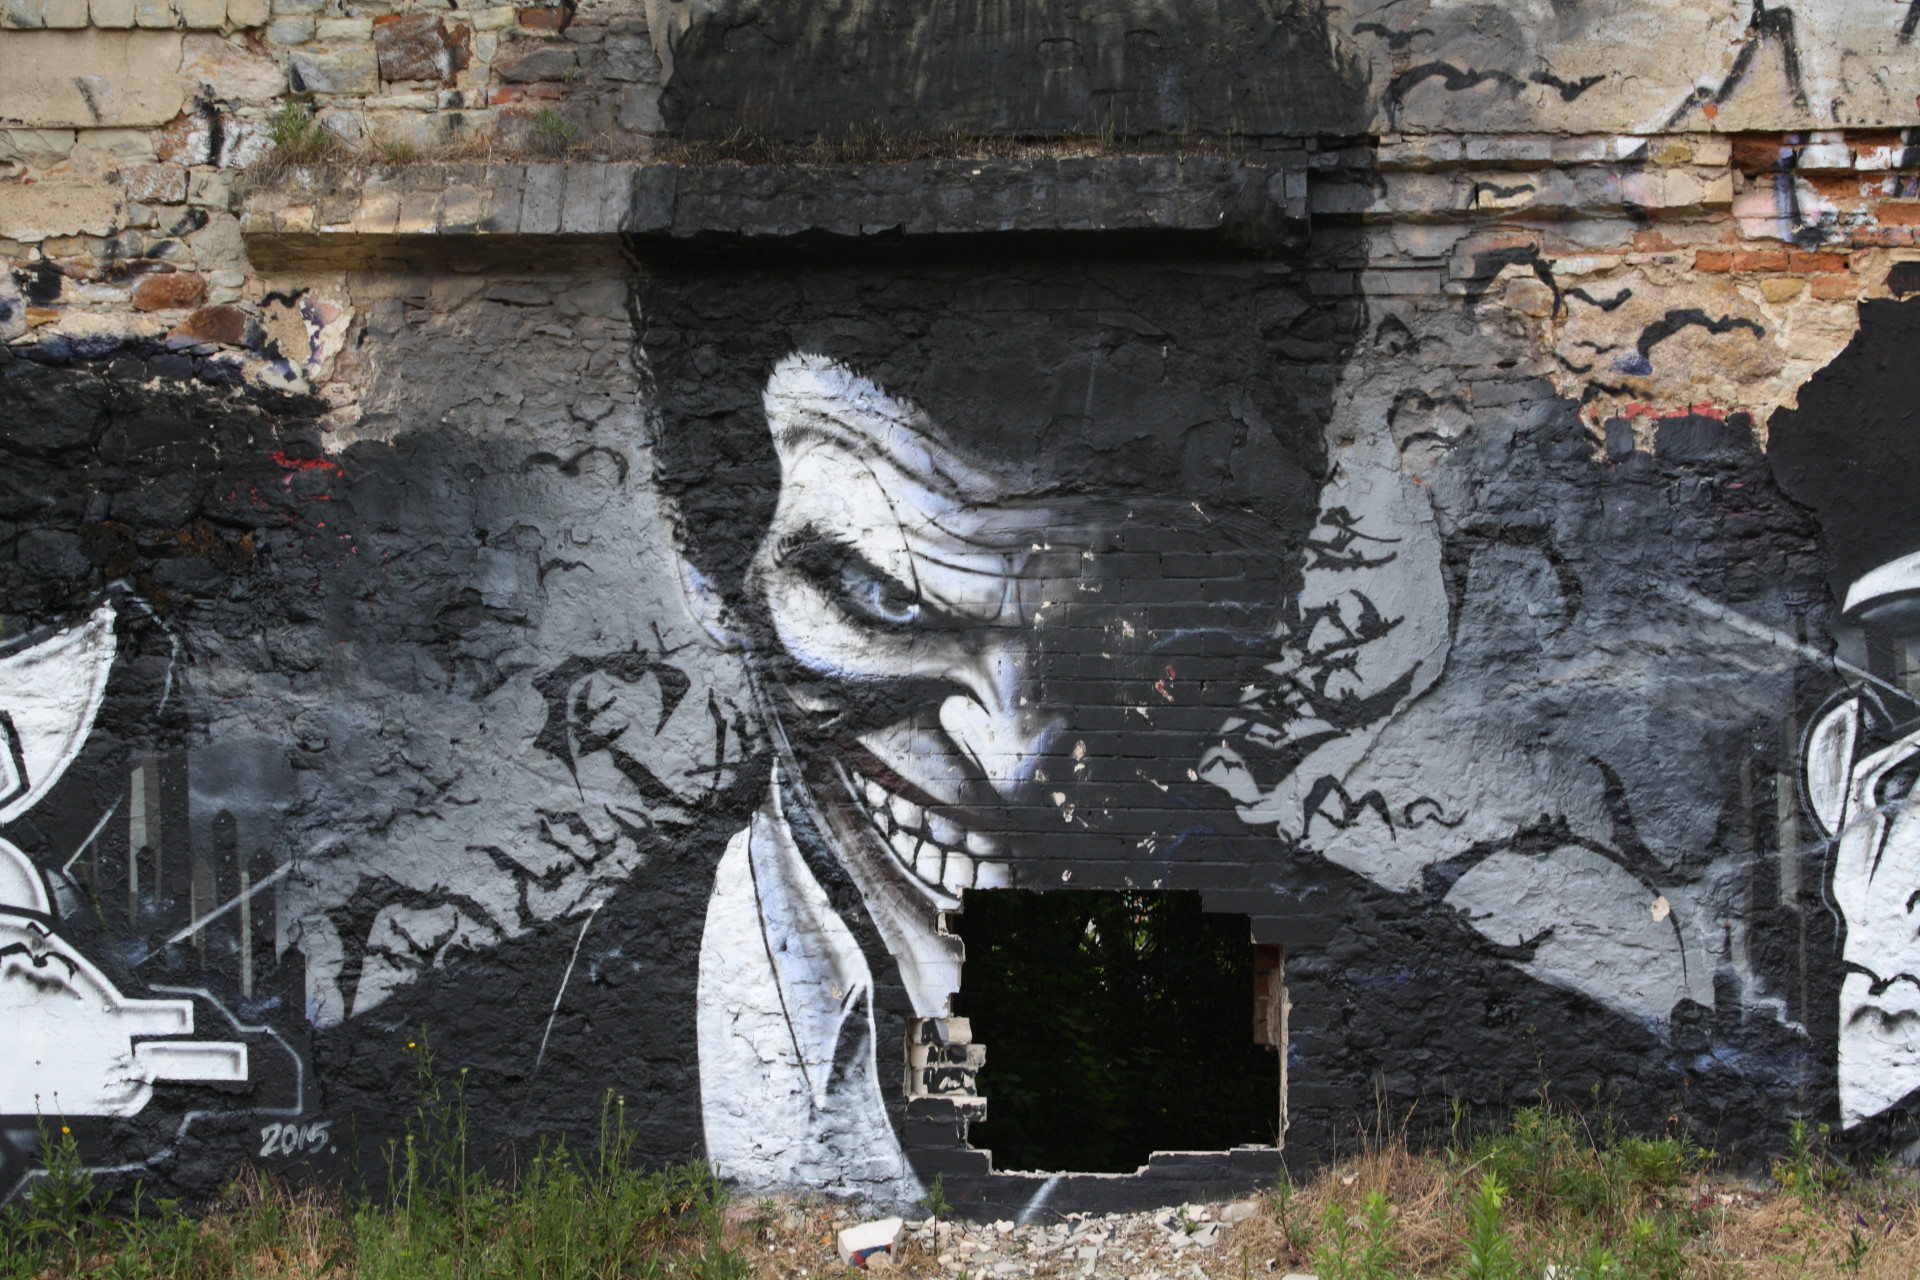 Graffiti In Glaucha 2015 Street Art In Halle Saale